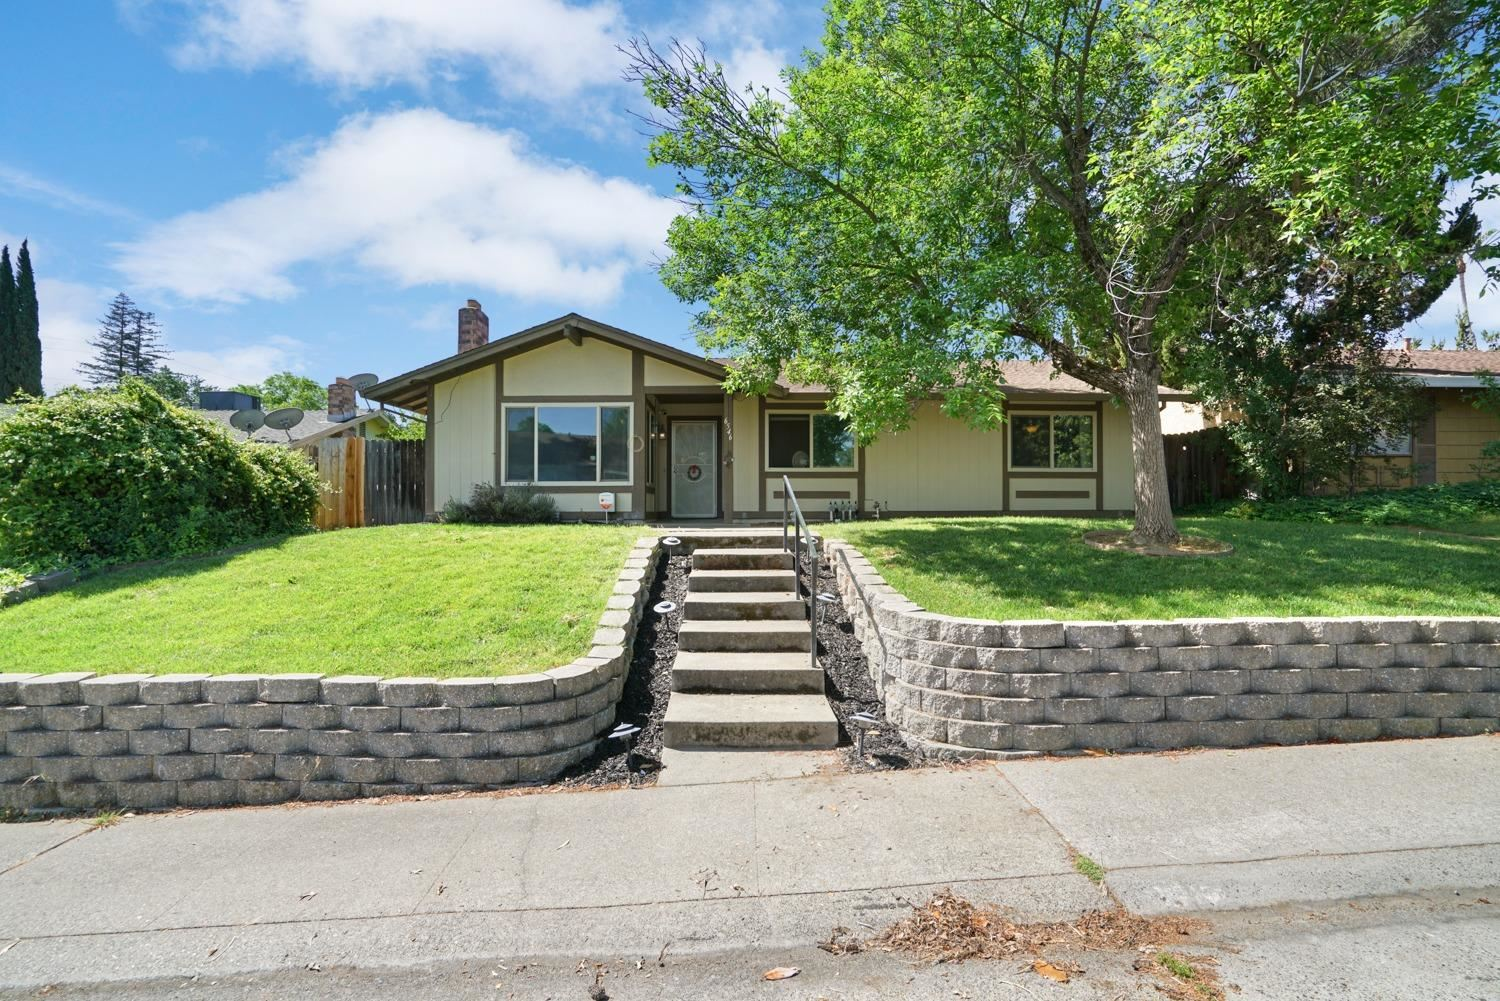 Photo of 6546 Donegal Drive, Citrus Heights, CA 95621 (MLS # 221046049)